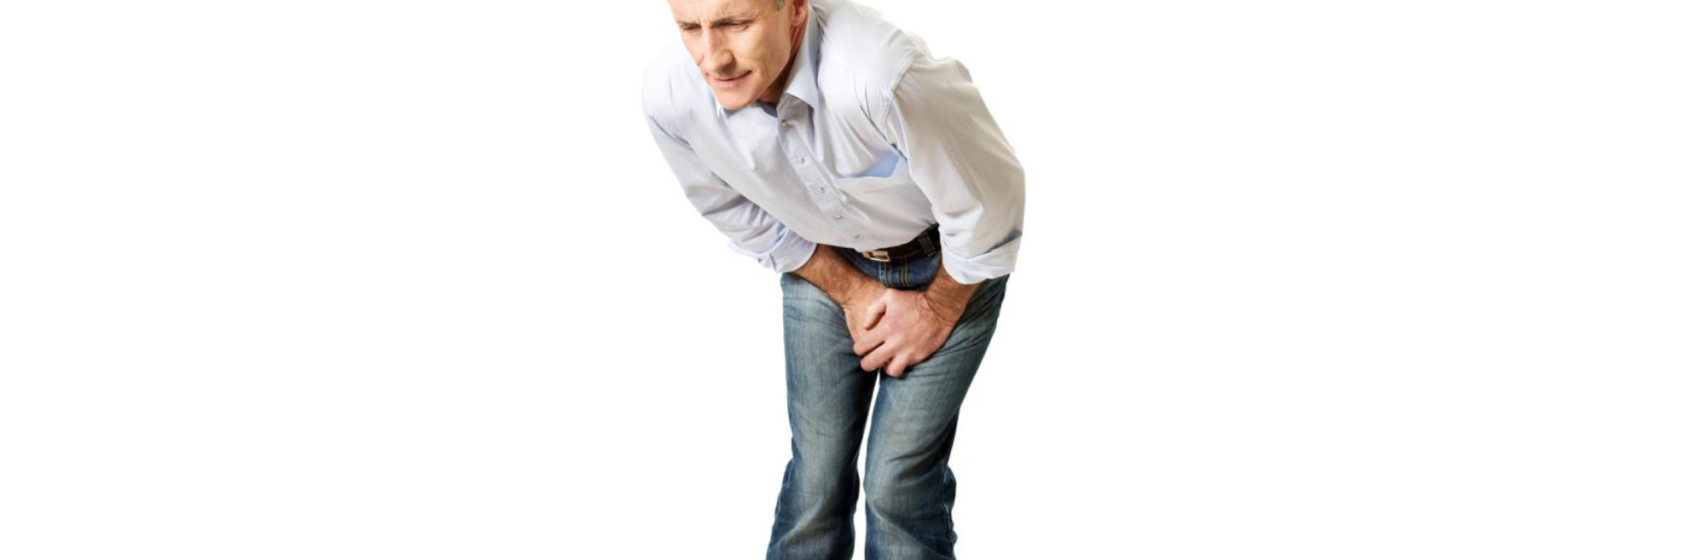 Male Pelvic Pain & Specialist Men's Health Physiotherapy Cardiff